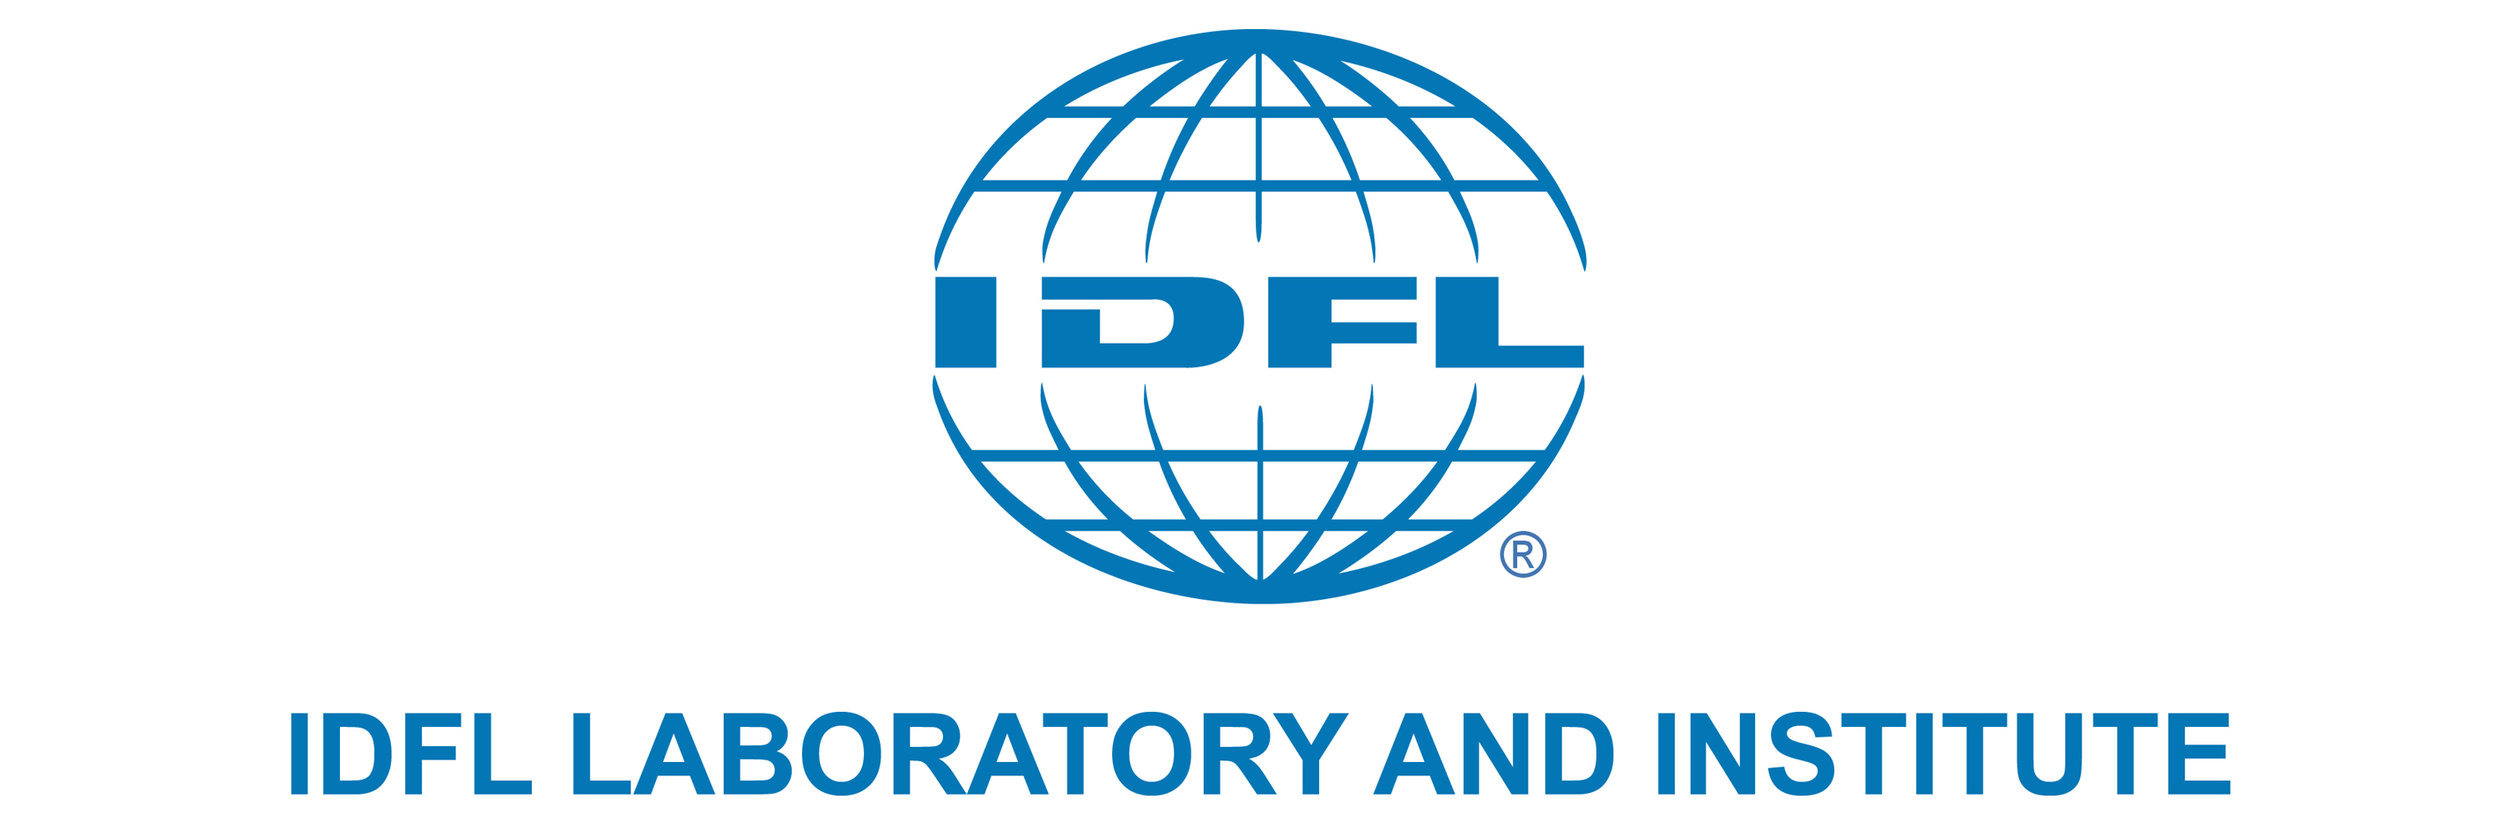 SINCE 1978, THE IDFL HAS BEEN PROVIDING ABSOLUTELY DEPENDABLE TEST RESULTS FOR COMPANIES ALL OVER THE WORLD.